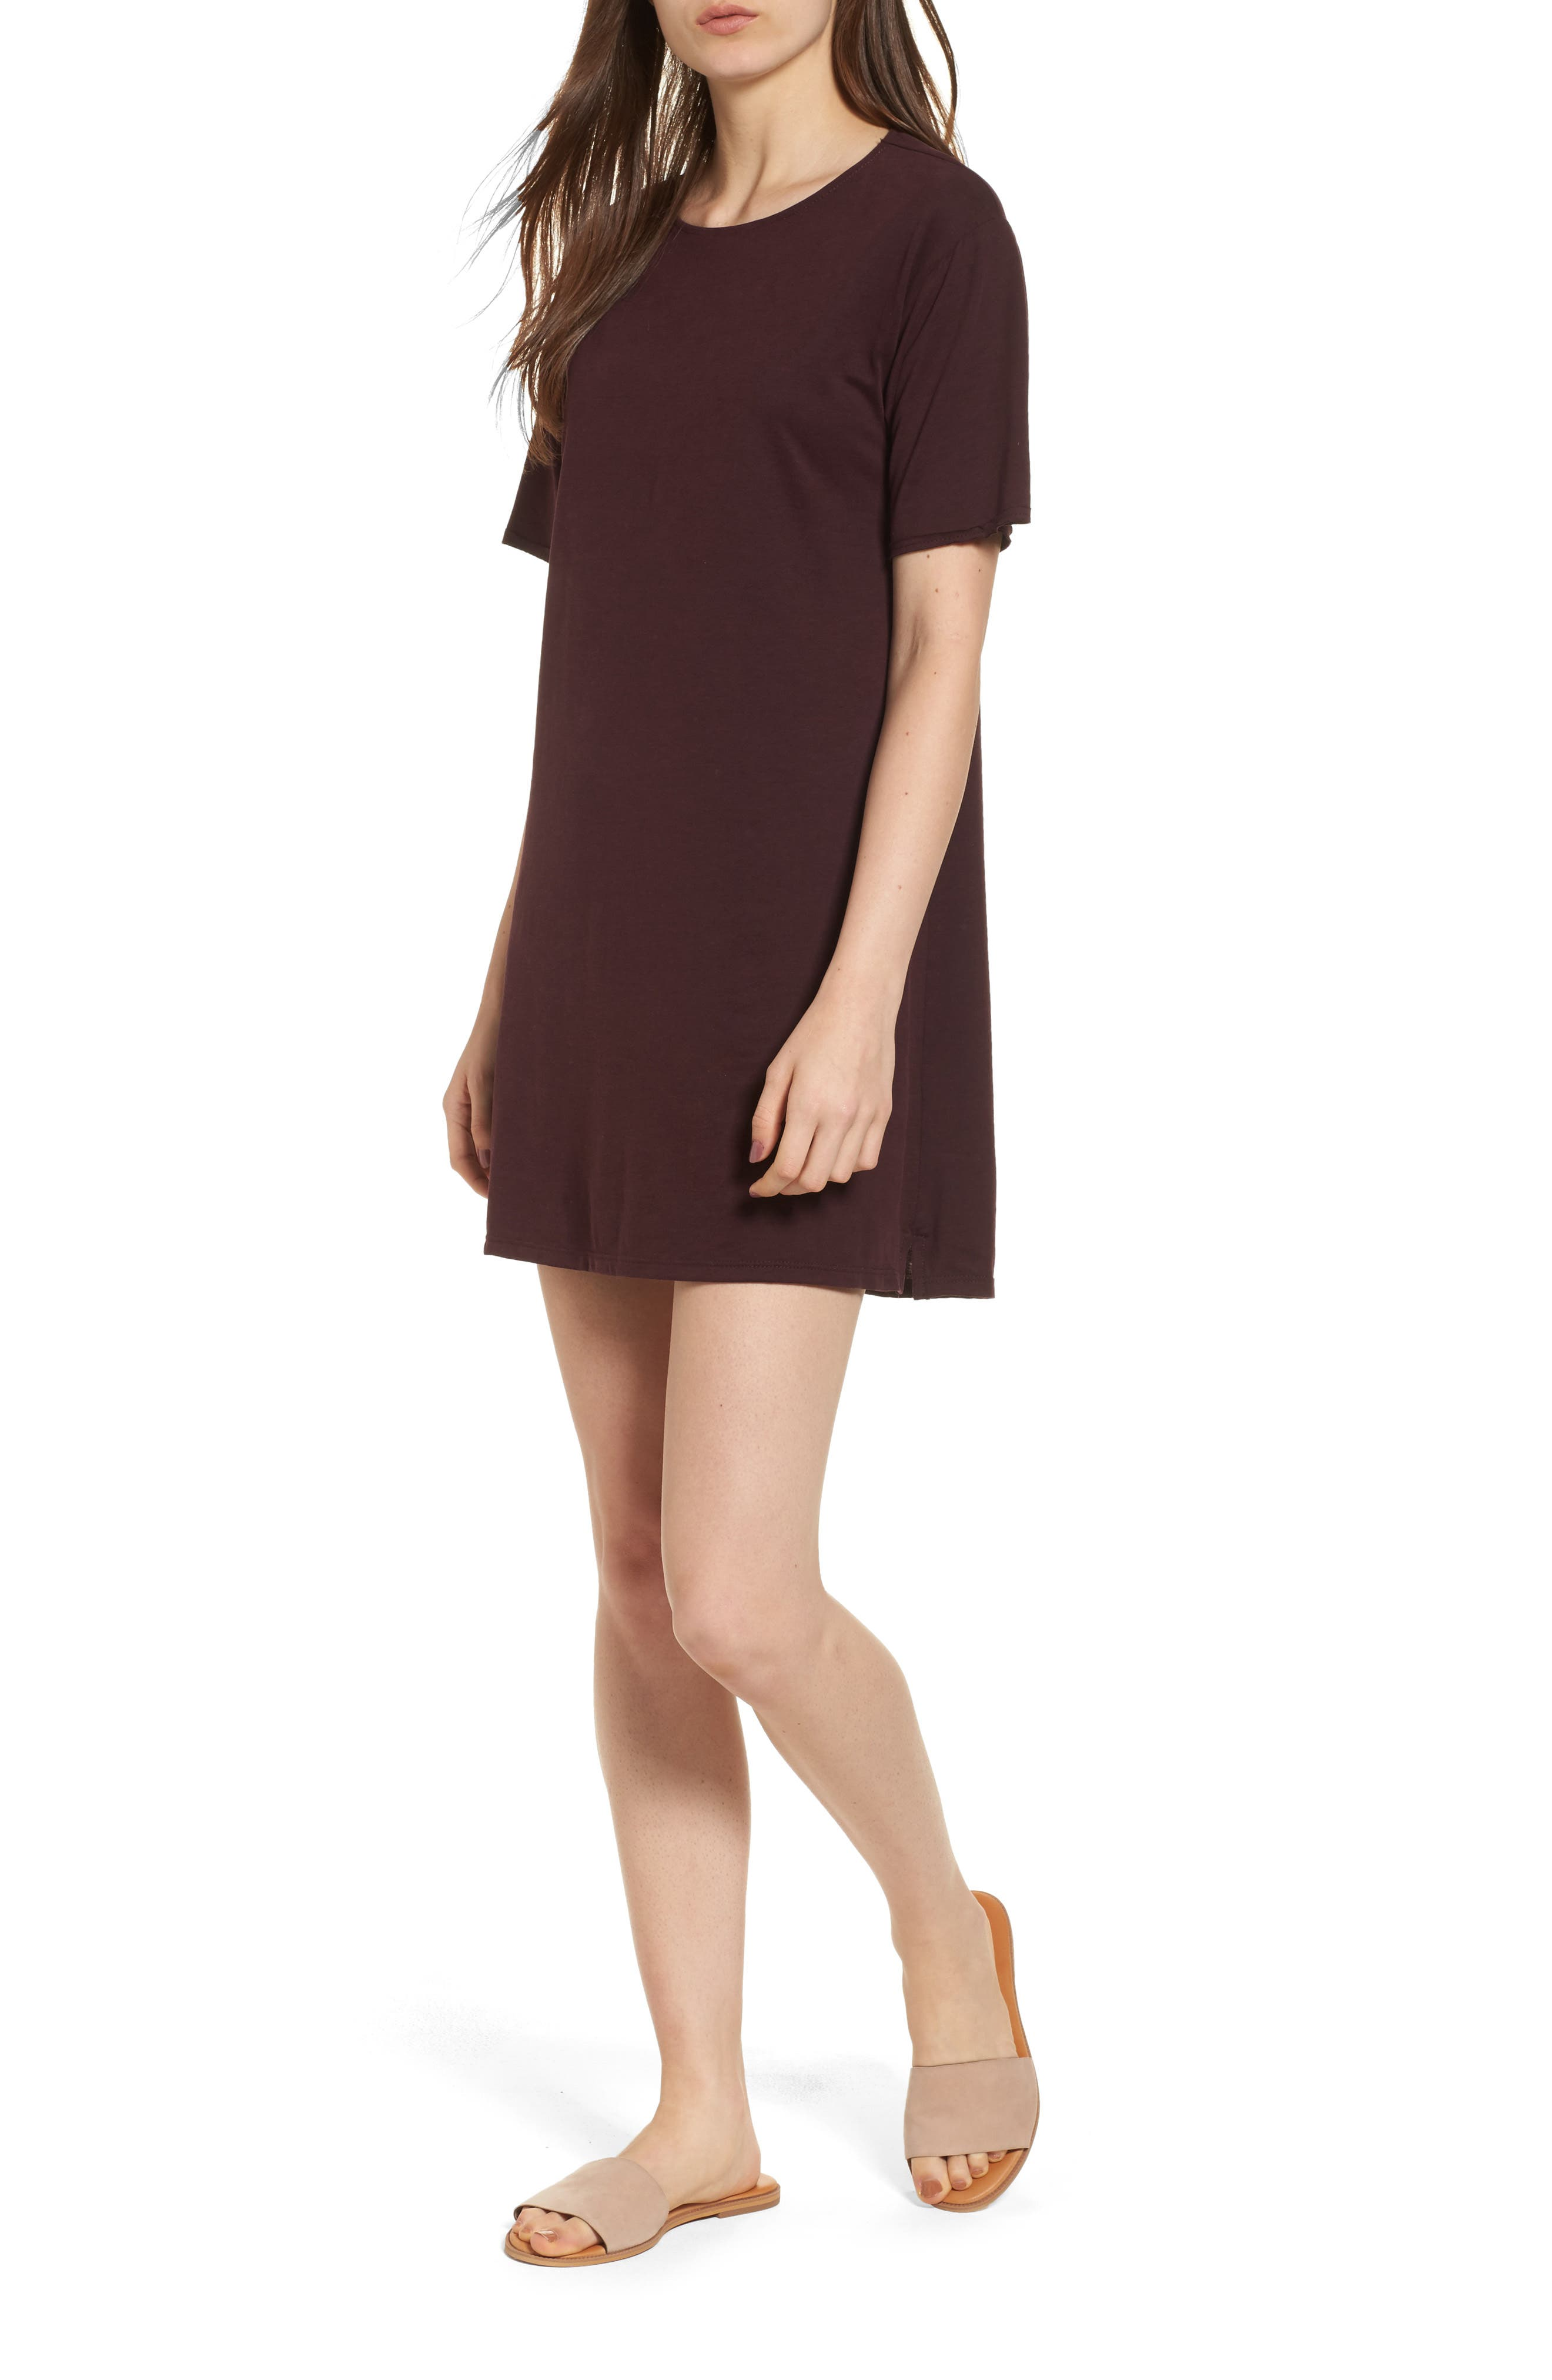 Alternate Image 1 Selected - PST by Project Social T Tie Back T-Shirt Dress